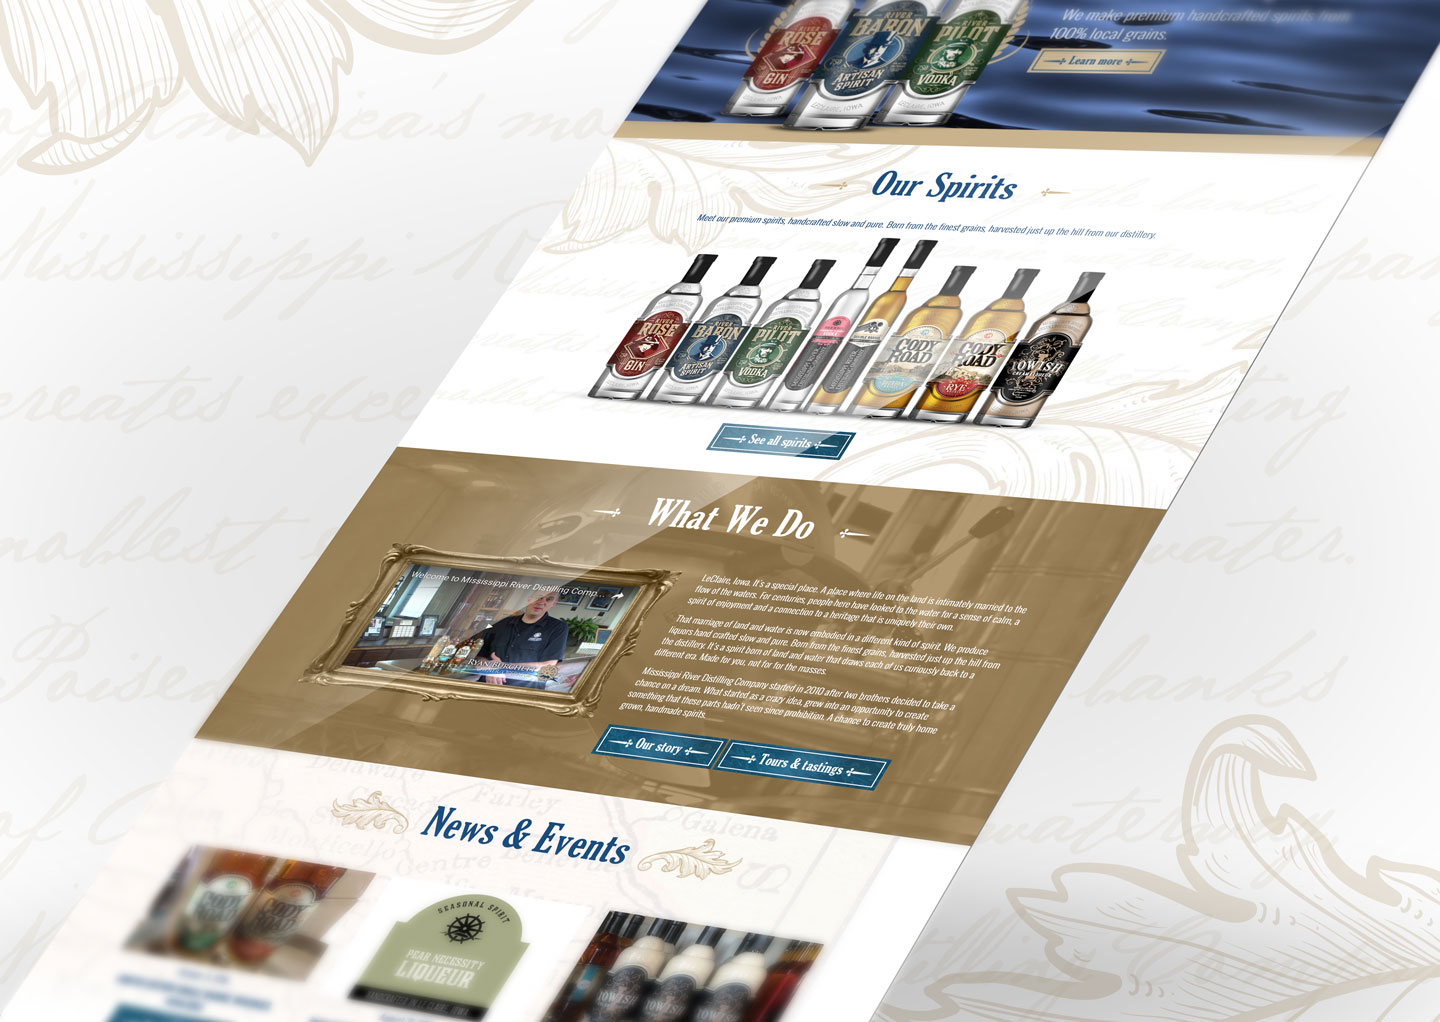 Mississippi River Distilling Compnay, MRDC, MindFire Communications, website design, custom website design